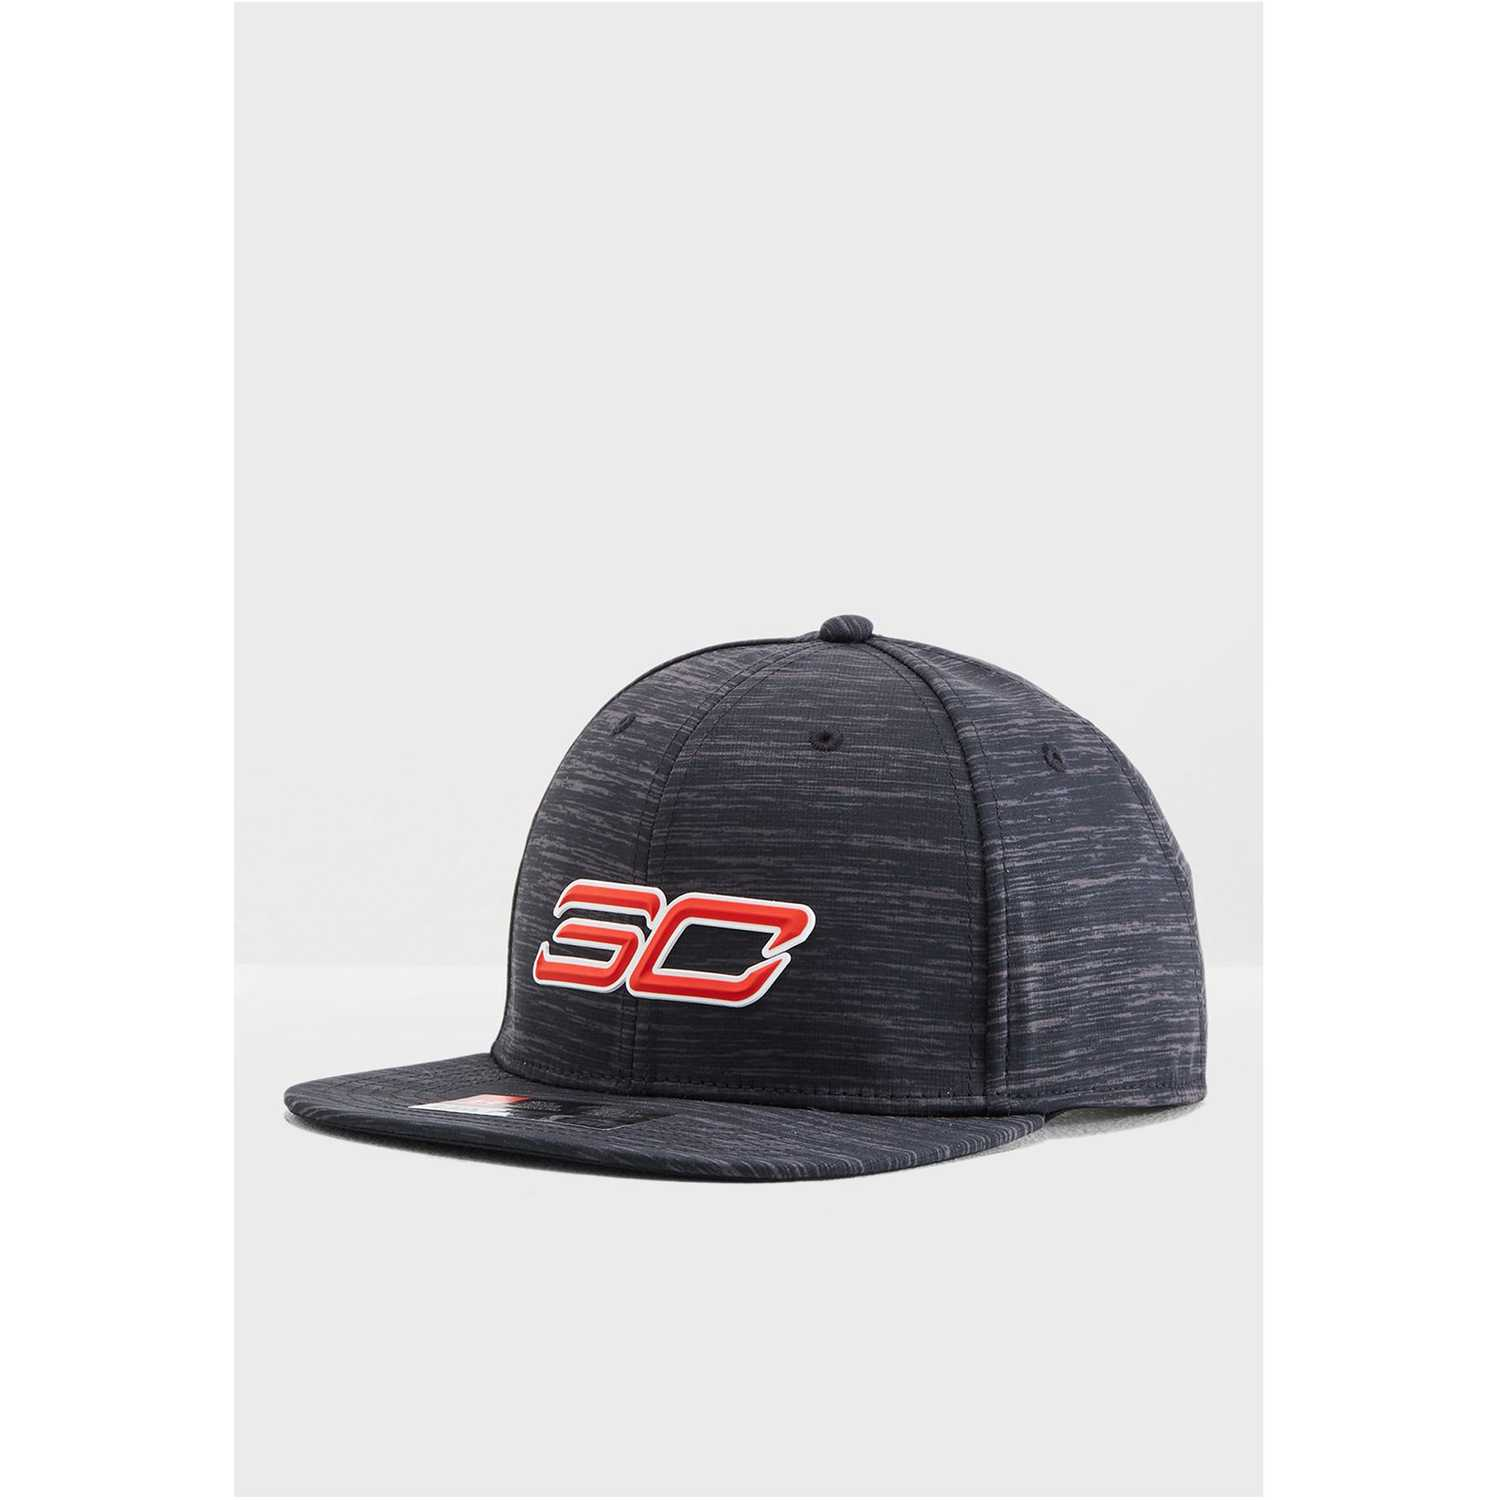 d440a599b1326 Gorro de Hombre Under Armour Plomo men s sc30 core 2.0 cap-blk ...